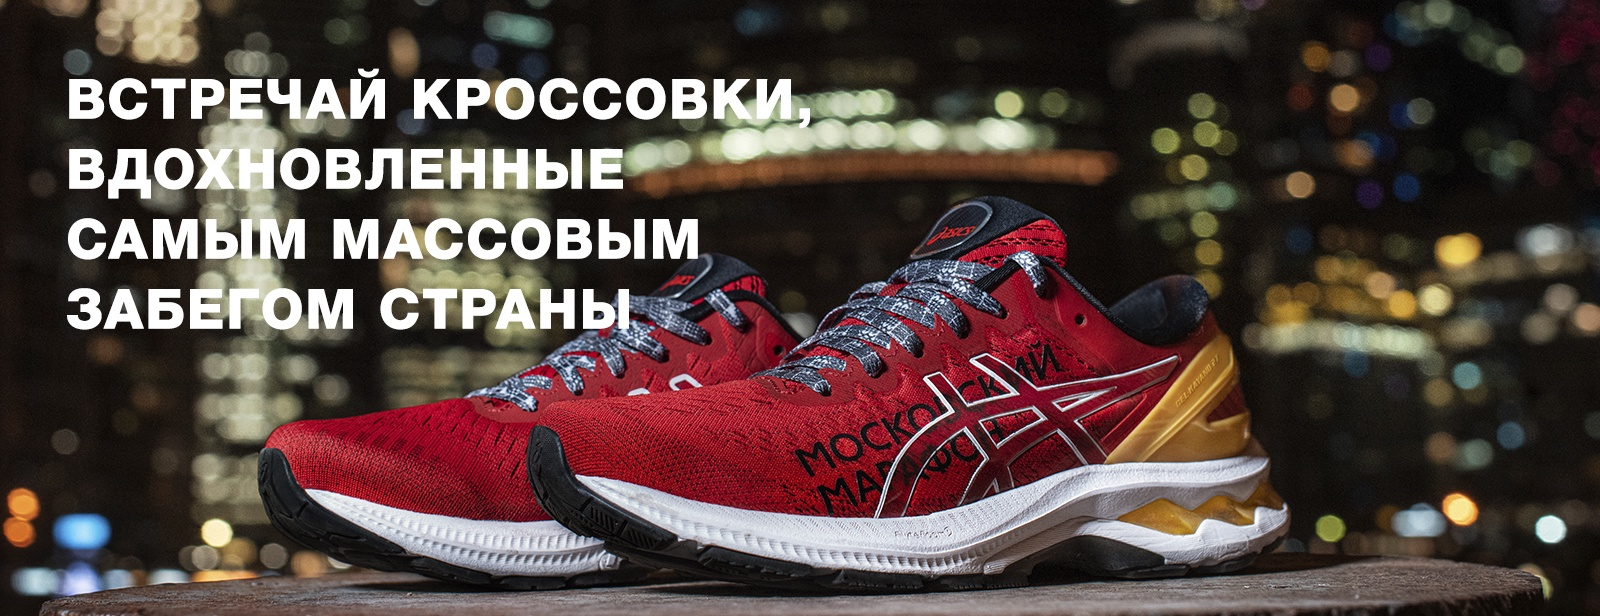 GEL-KAYANO 27 and Moscow Marathon